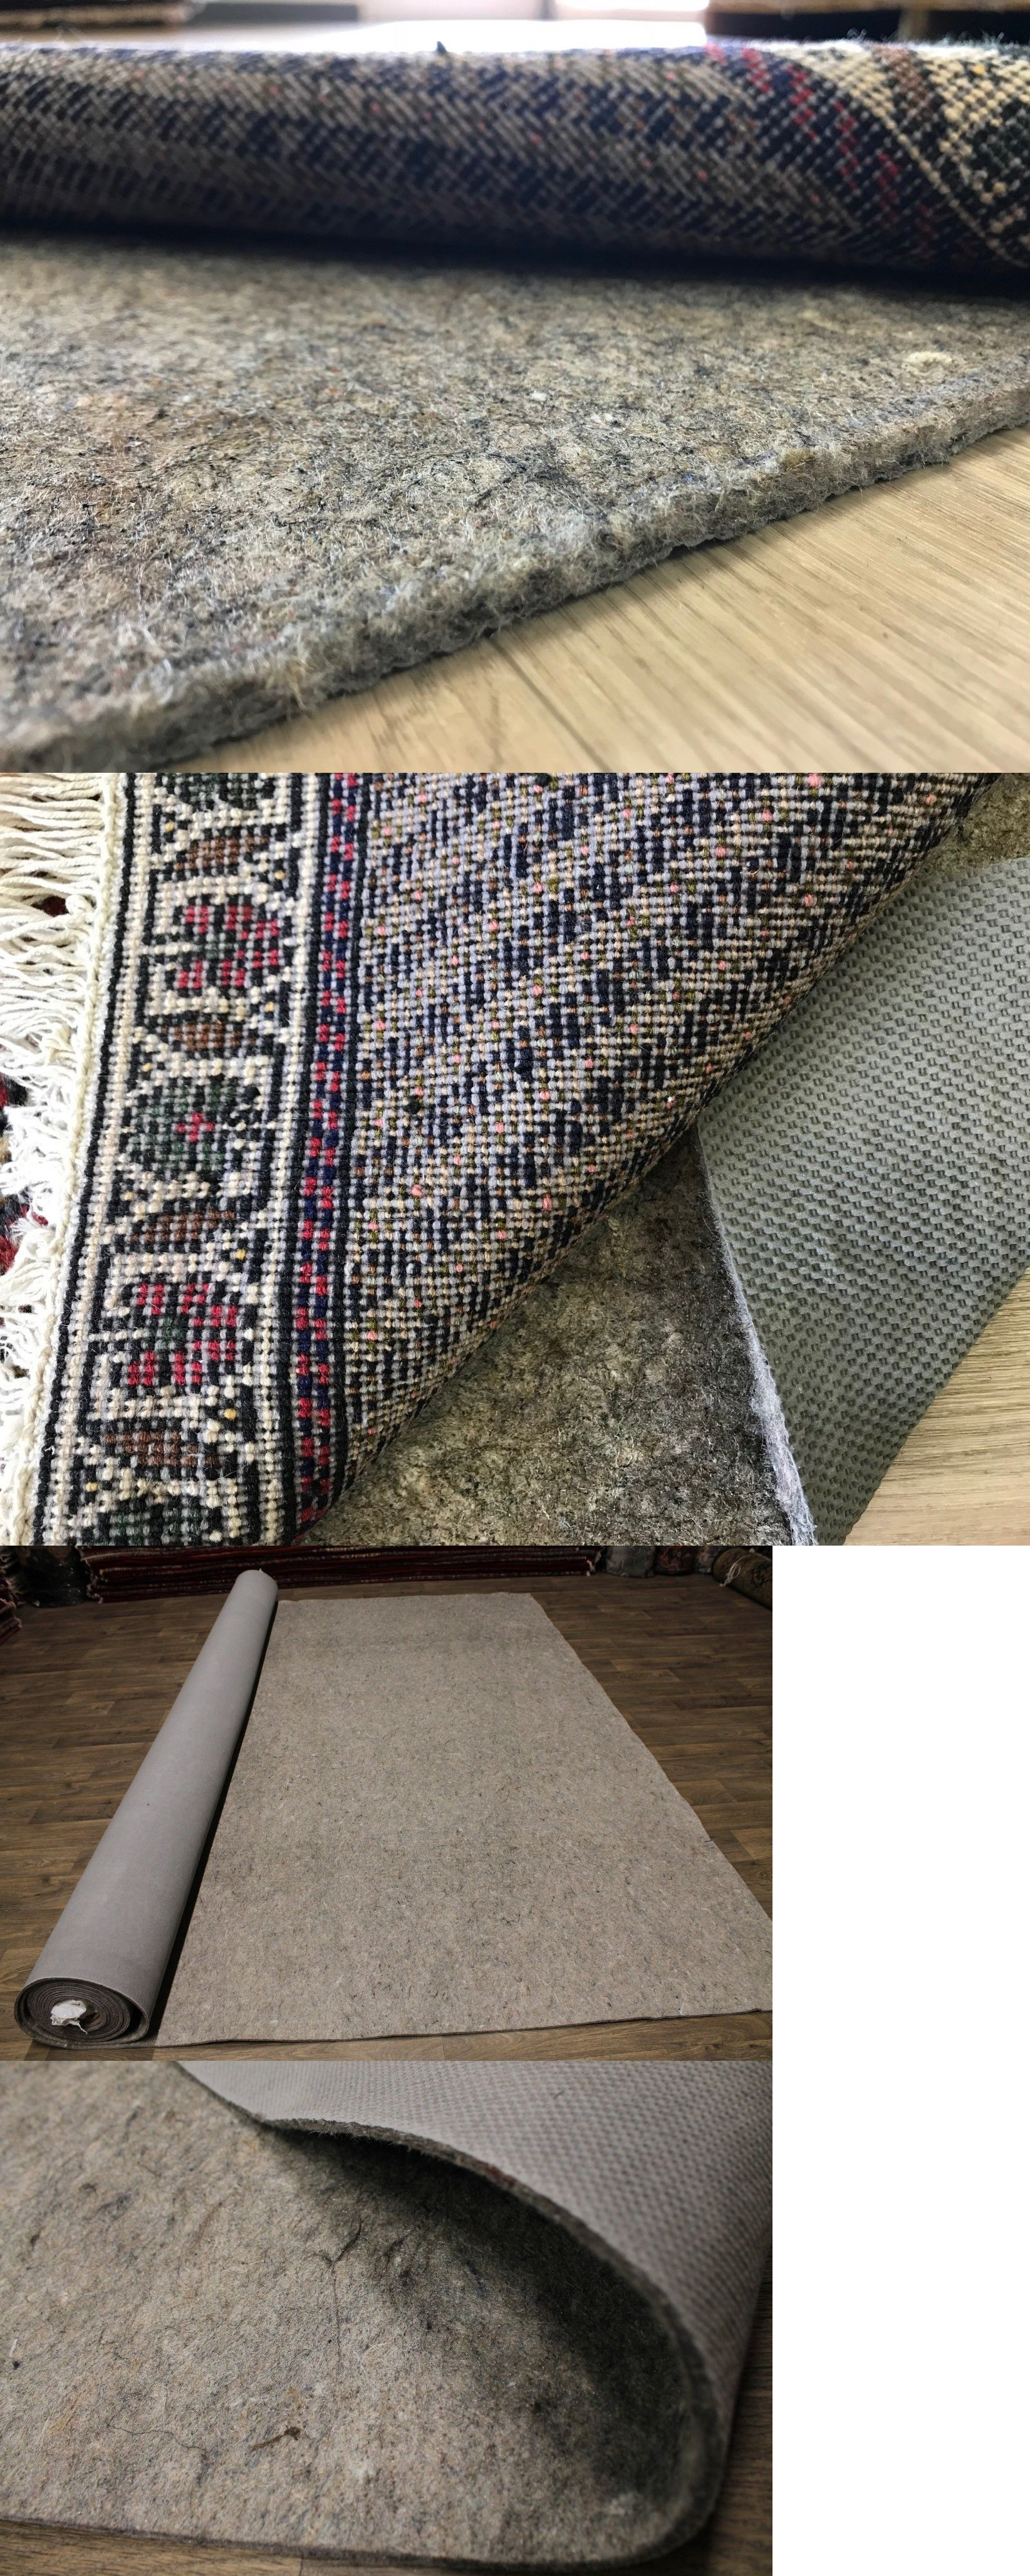 Details About Eco Friendly Non Slip Extra Cushioned Rug Pads For